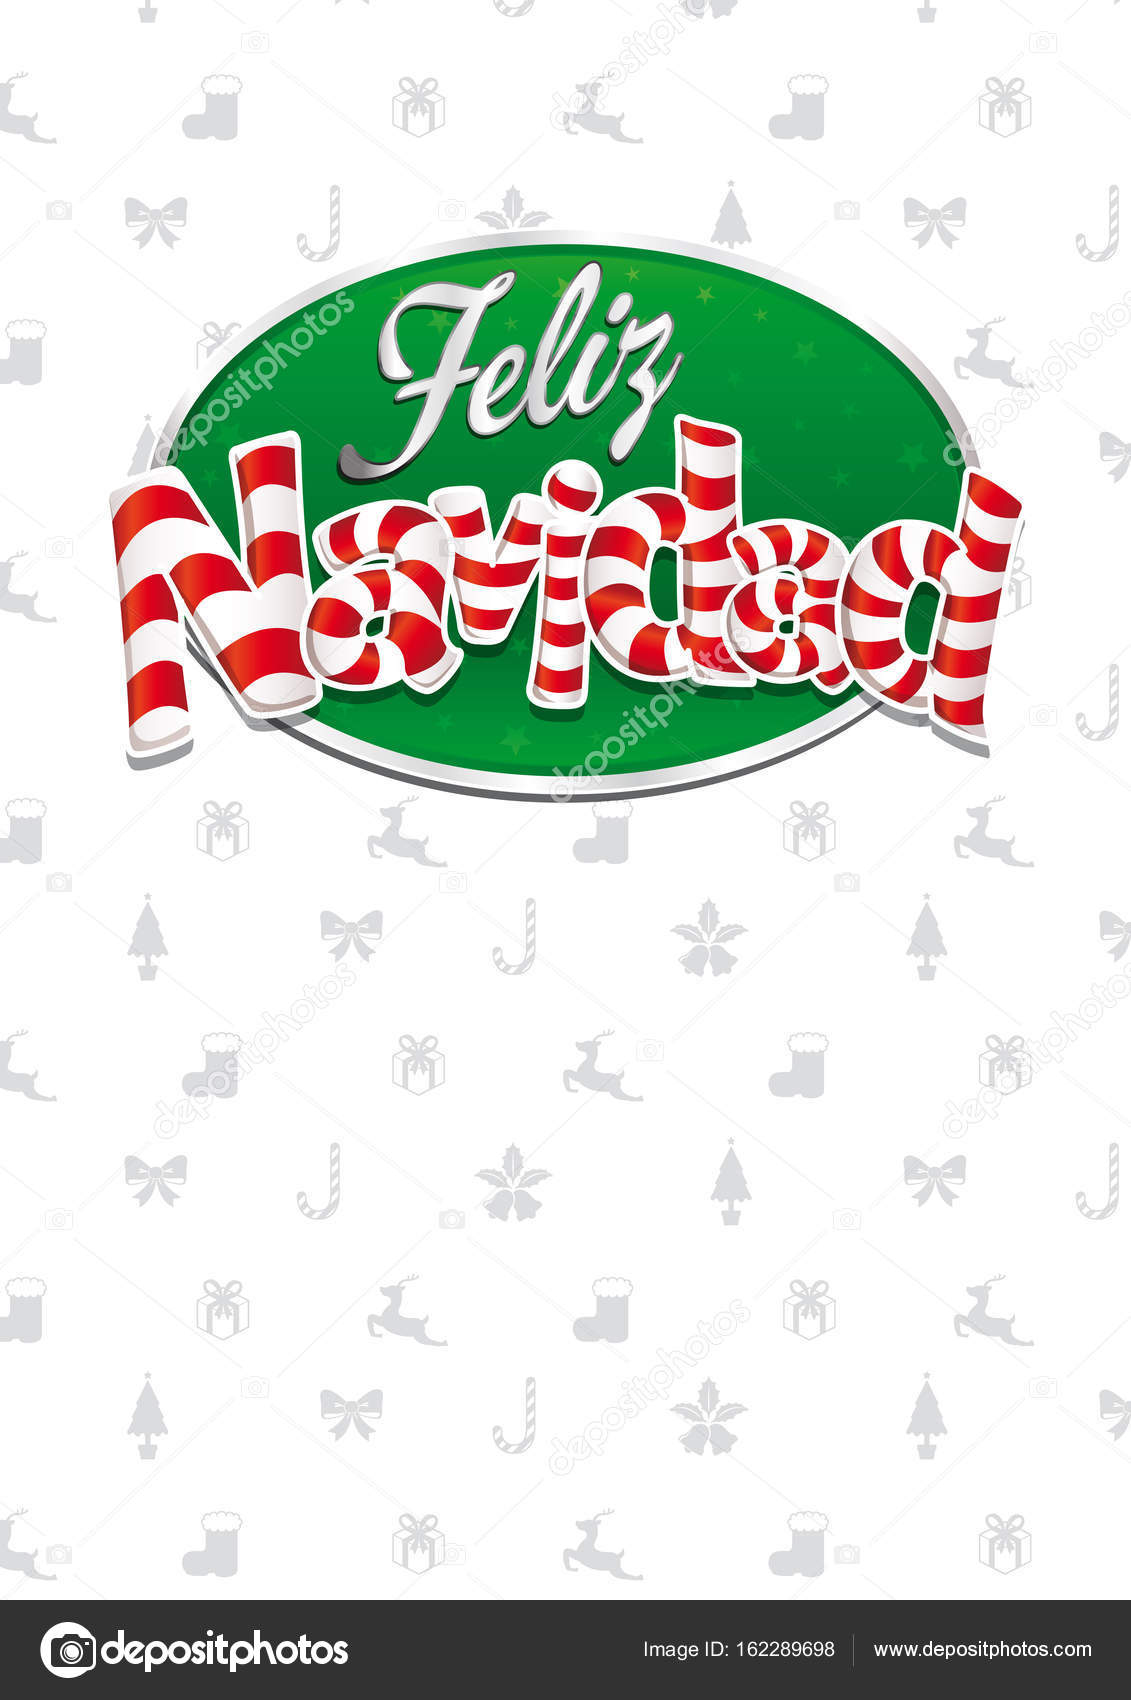 Feliz navidad merry christmas in spanish language white cover feliz navidad merry christmas in spanish language white cover of greeting card with bows reindeers gifts and trees in background layout size 21 cm x kristyandbryce Images